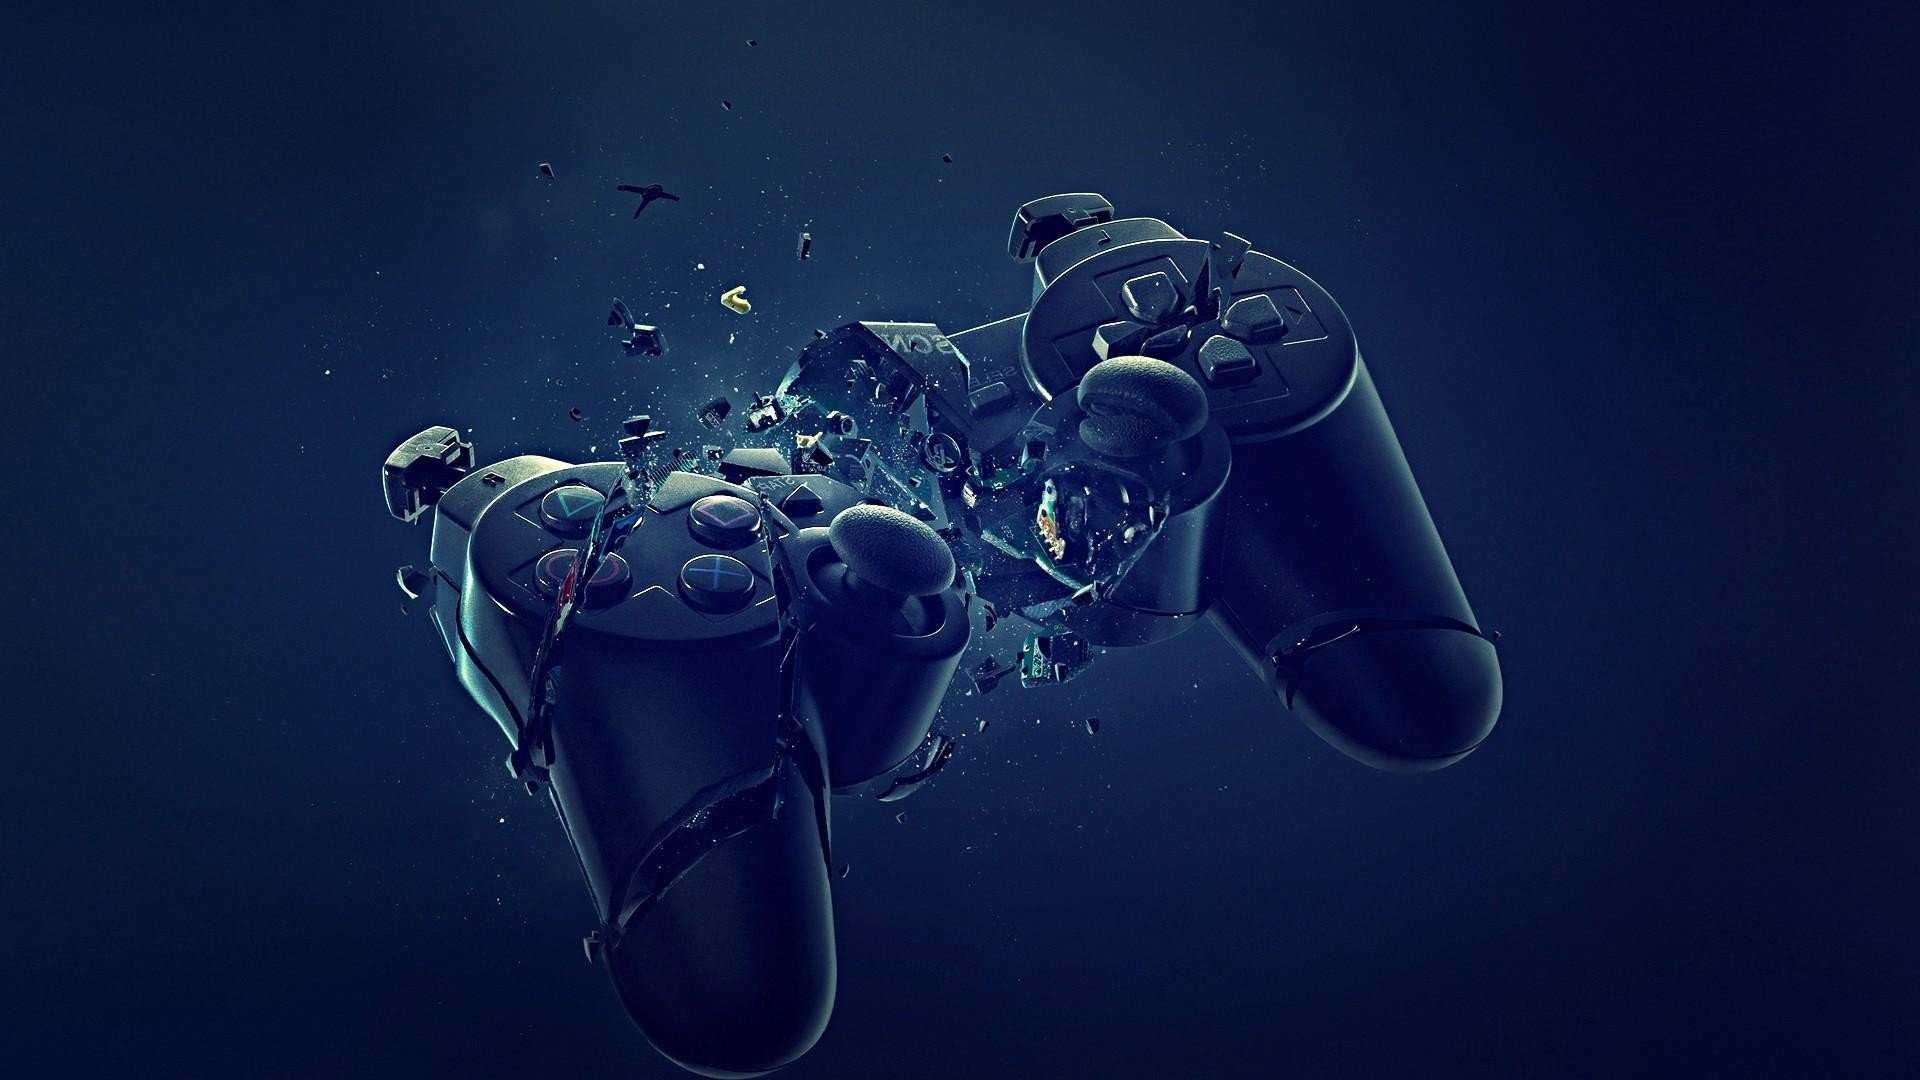 Ps4 wallpapers 84 background pictures - Ps4 wallpaper hd ...